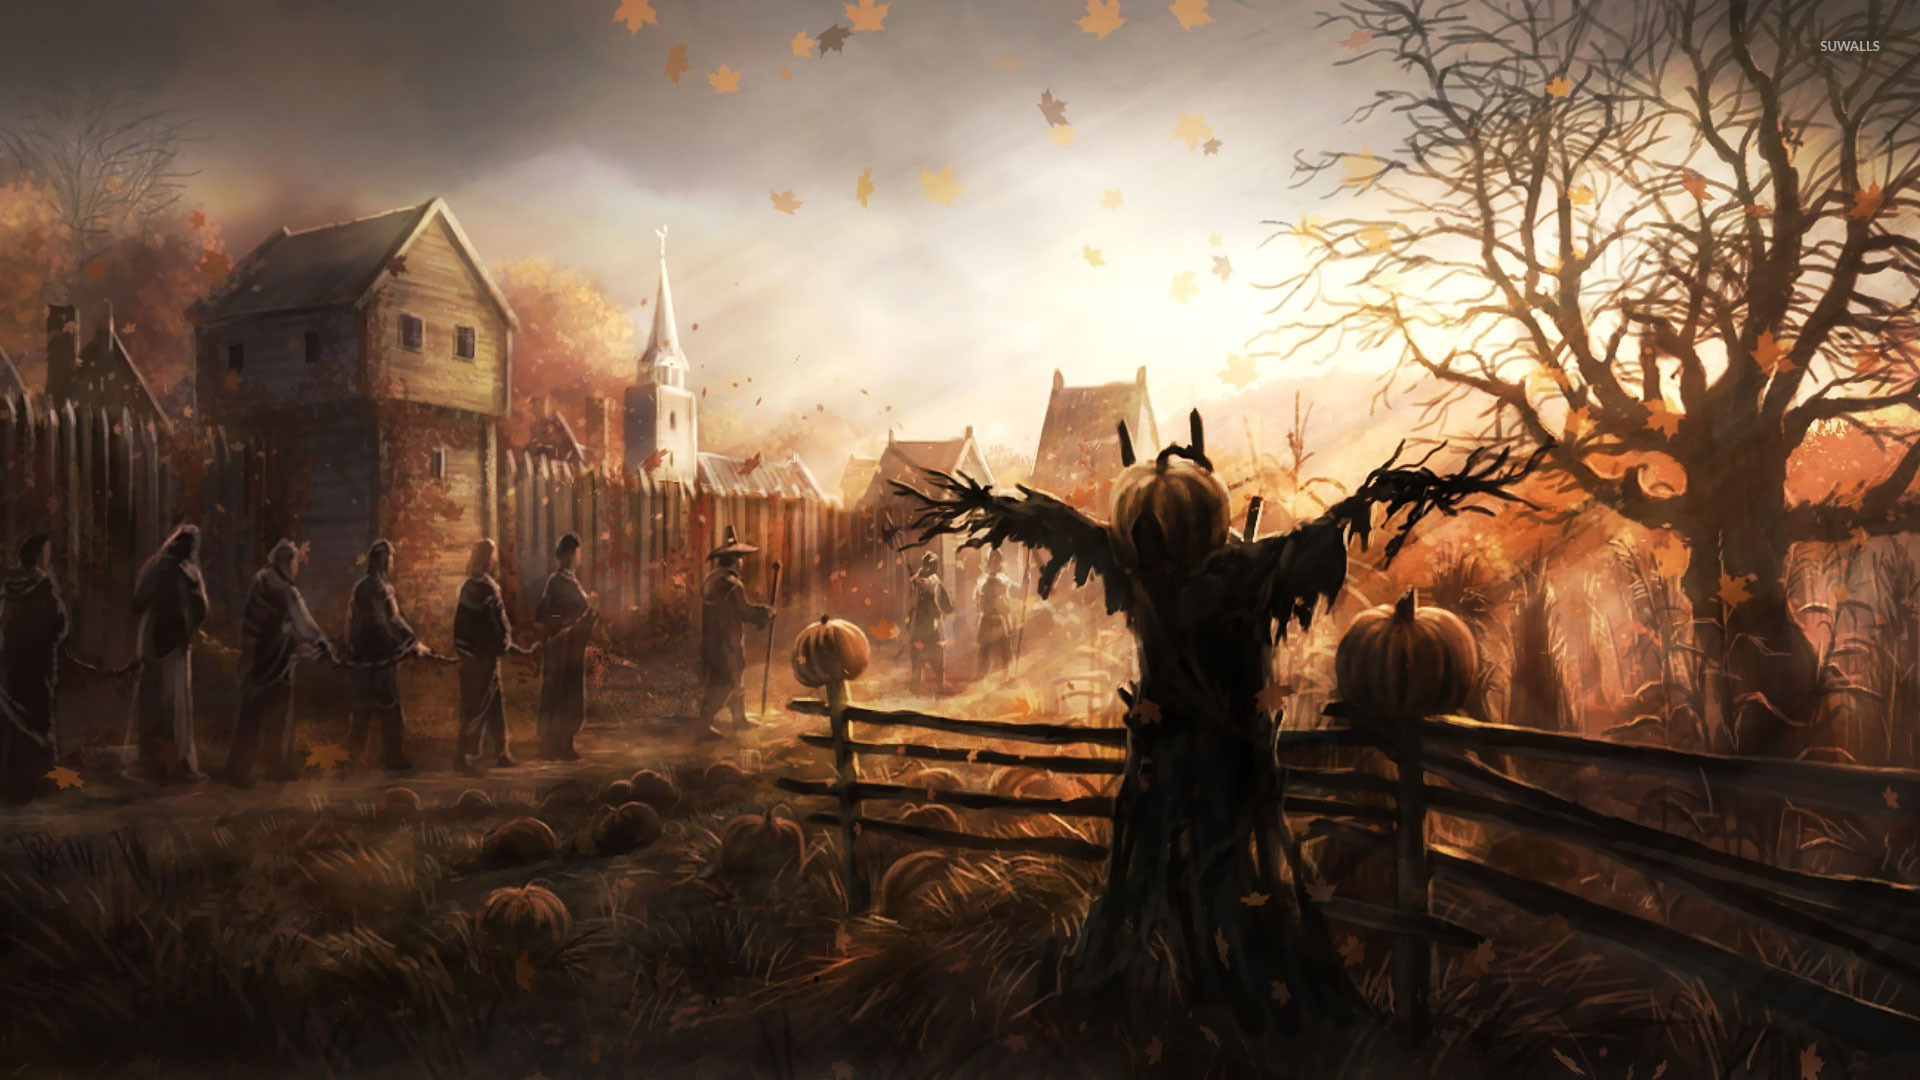 Fall Scarecrow Wallpaper Chained Slaves Walking Past The Scarecrow Wallpaper